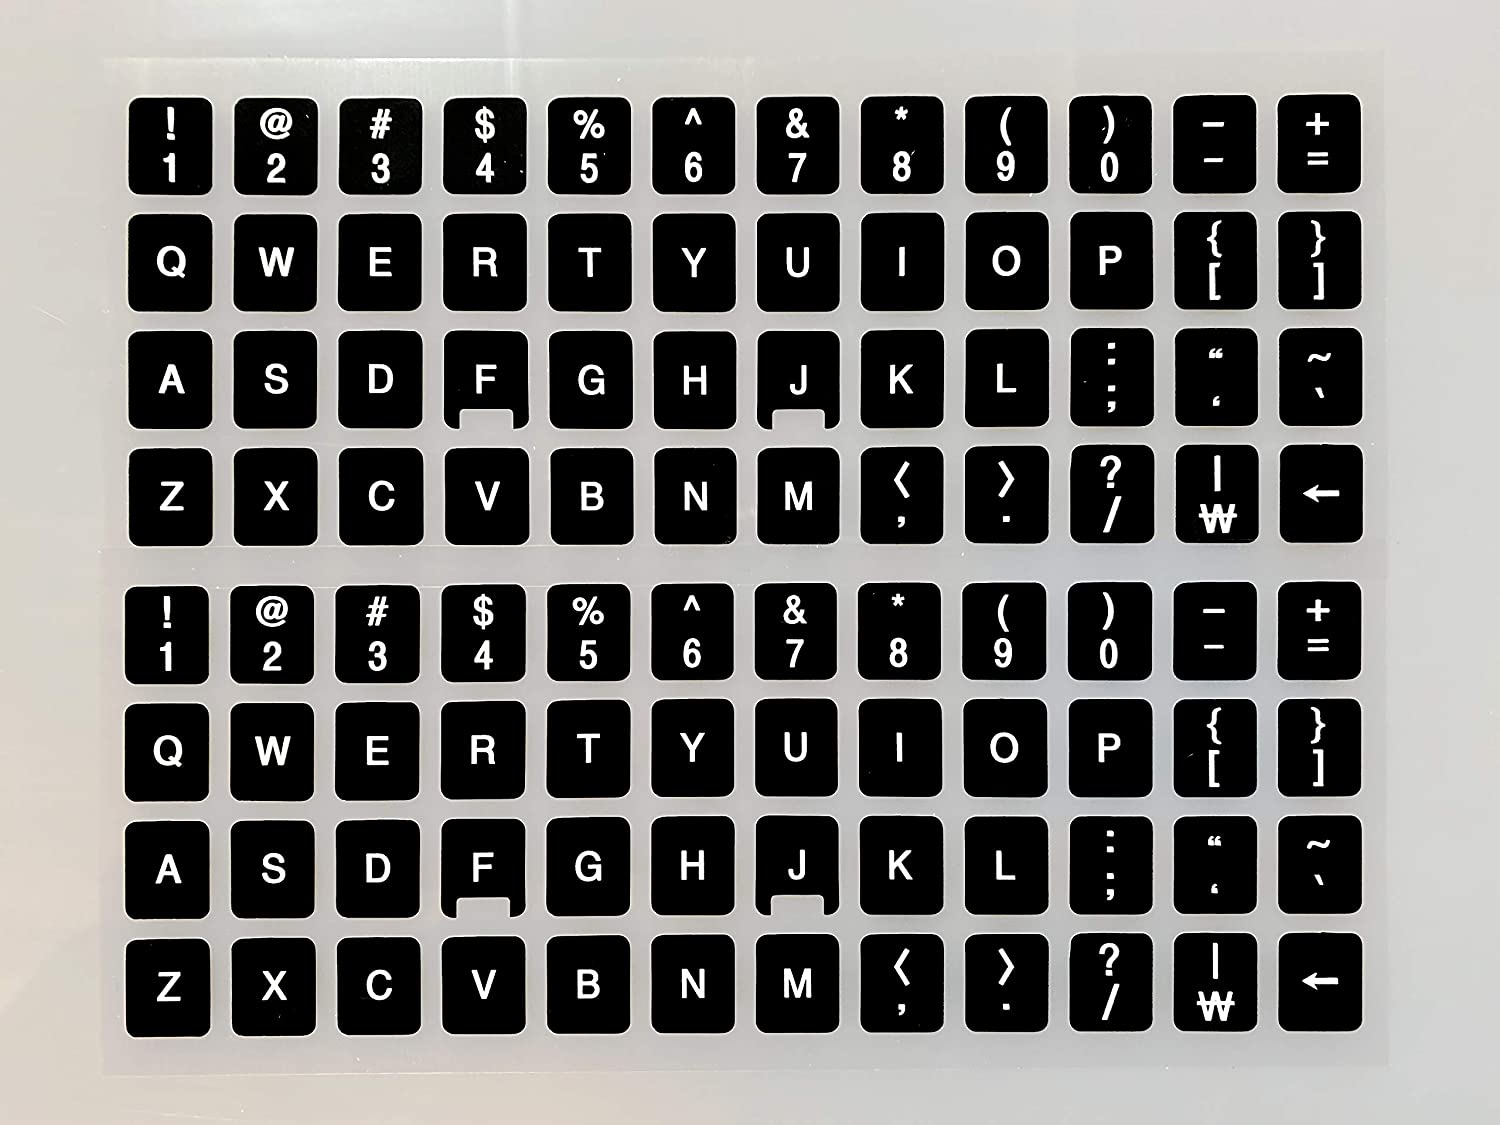 [2 Packs] Replacement English Keyboard Stickers on Non Transparent Black Background for Any PC and Laptop (ENG)